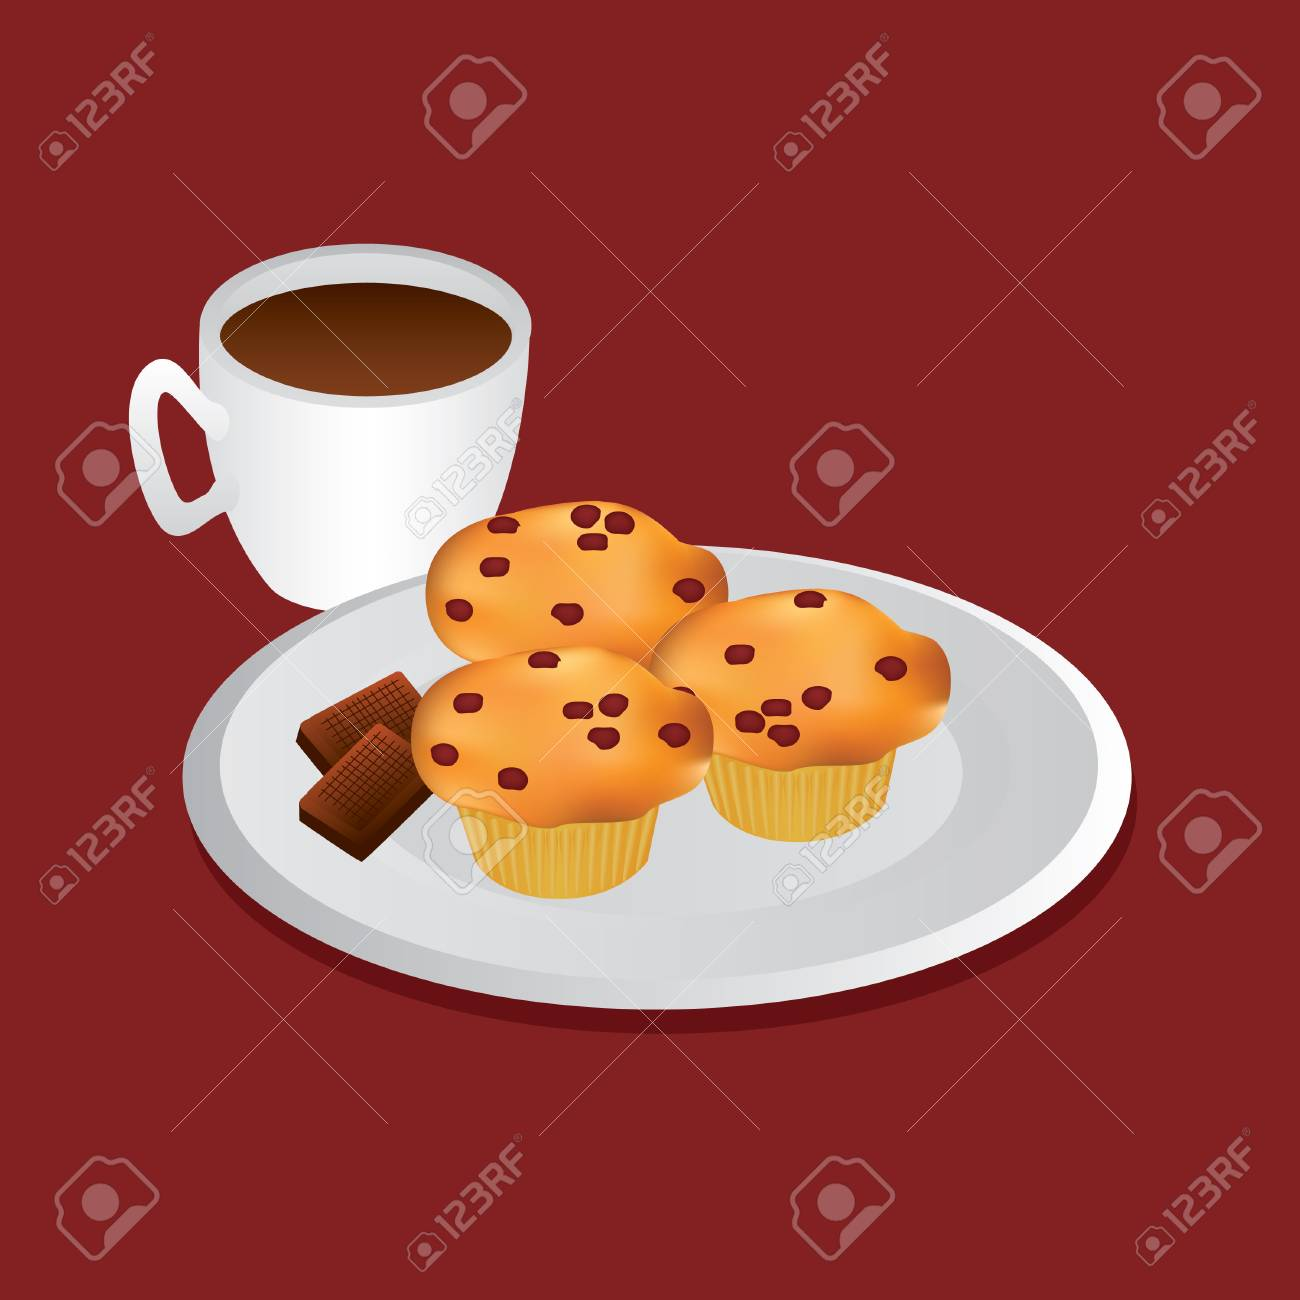 Muffins And Cup Of Coffee Royalty Free Cliparts Vectors And Stock Illustration Image 7817804